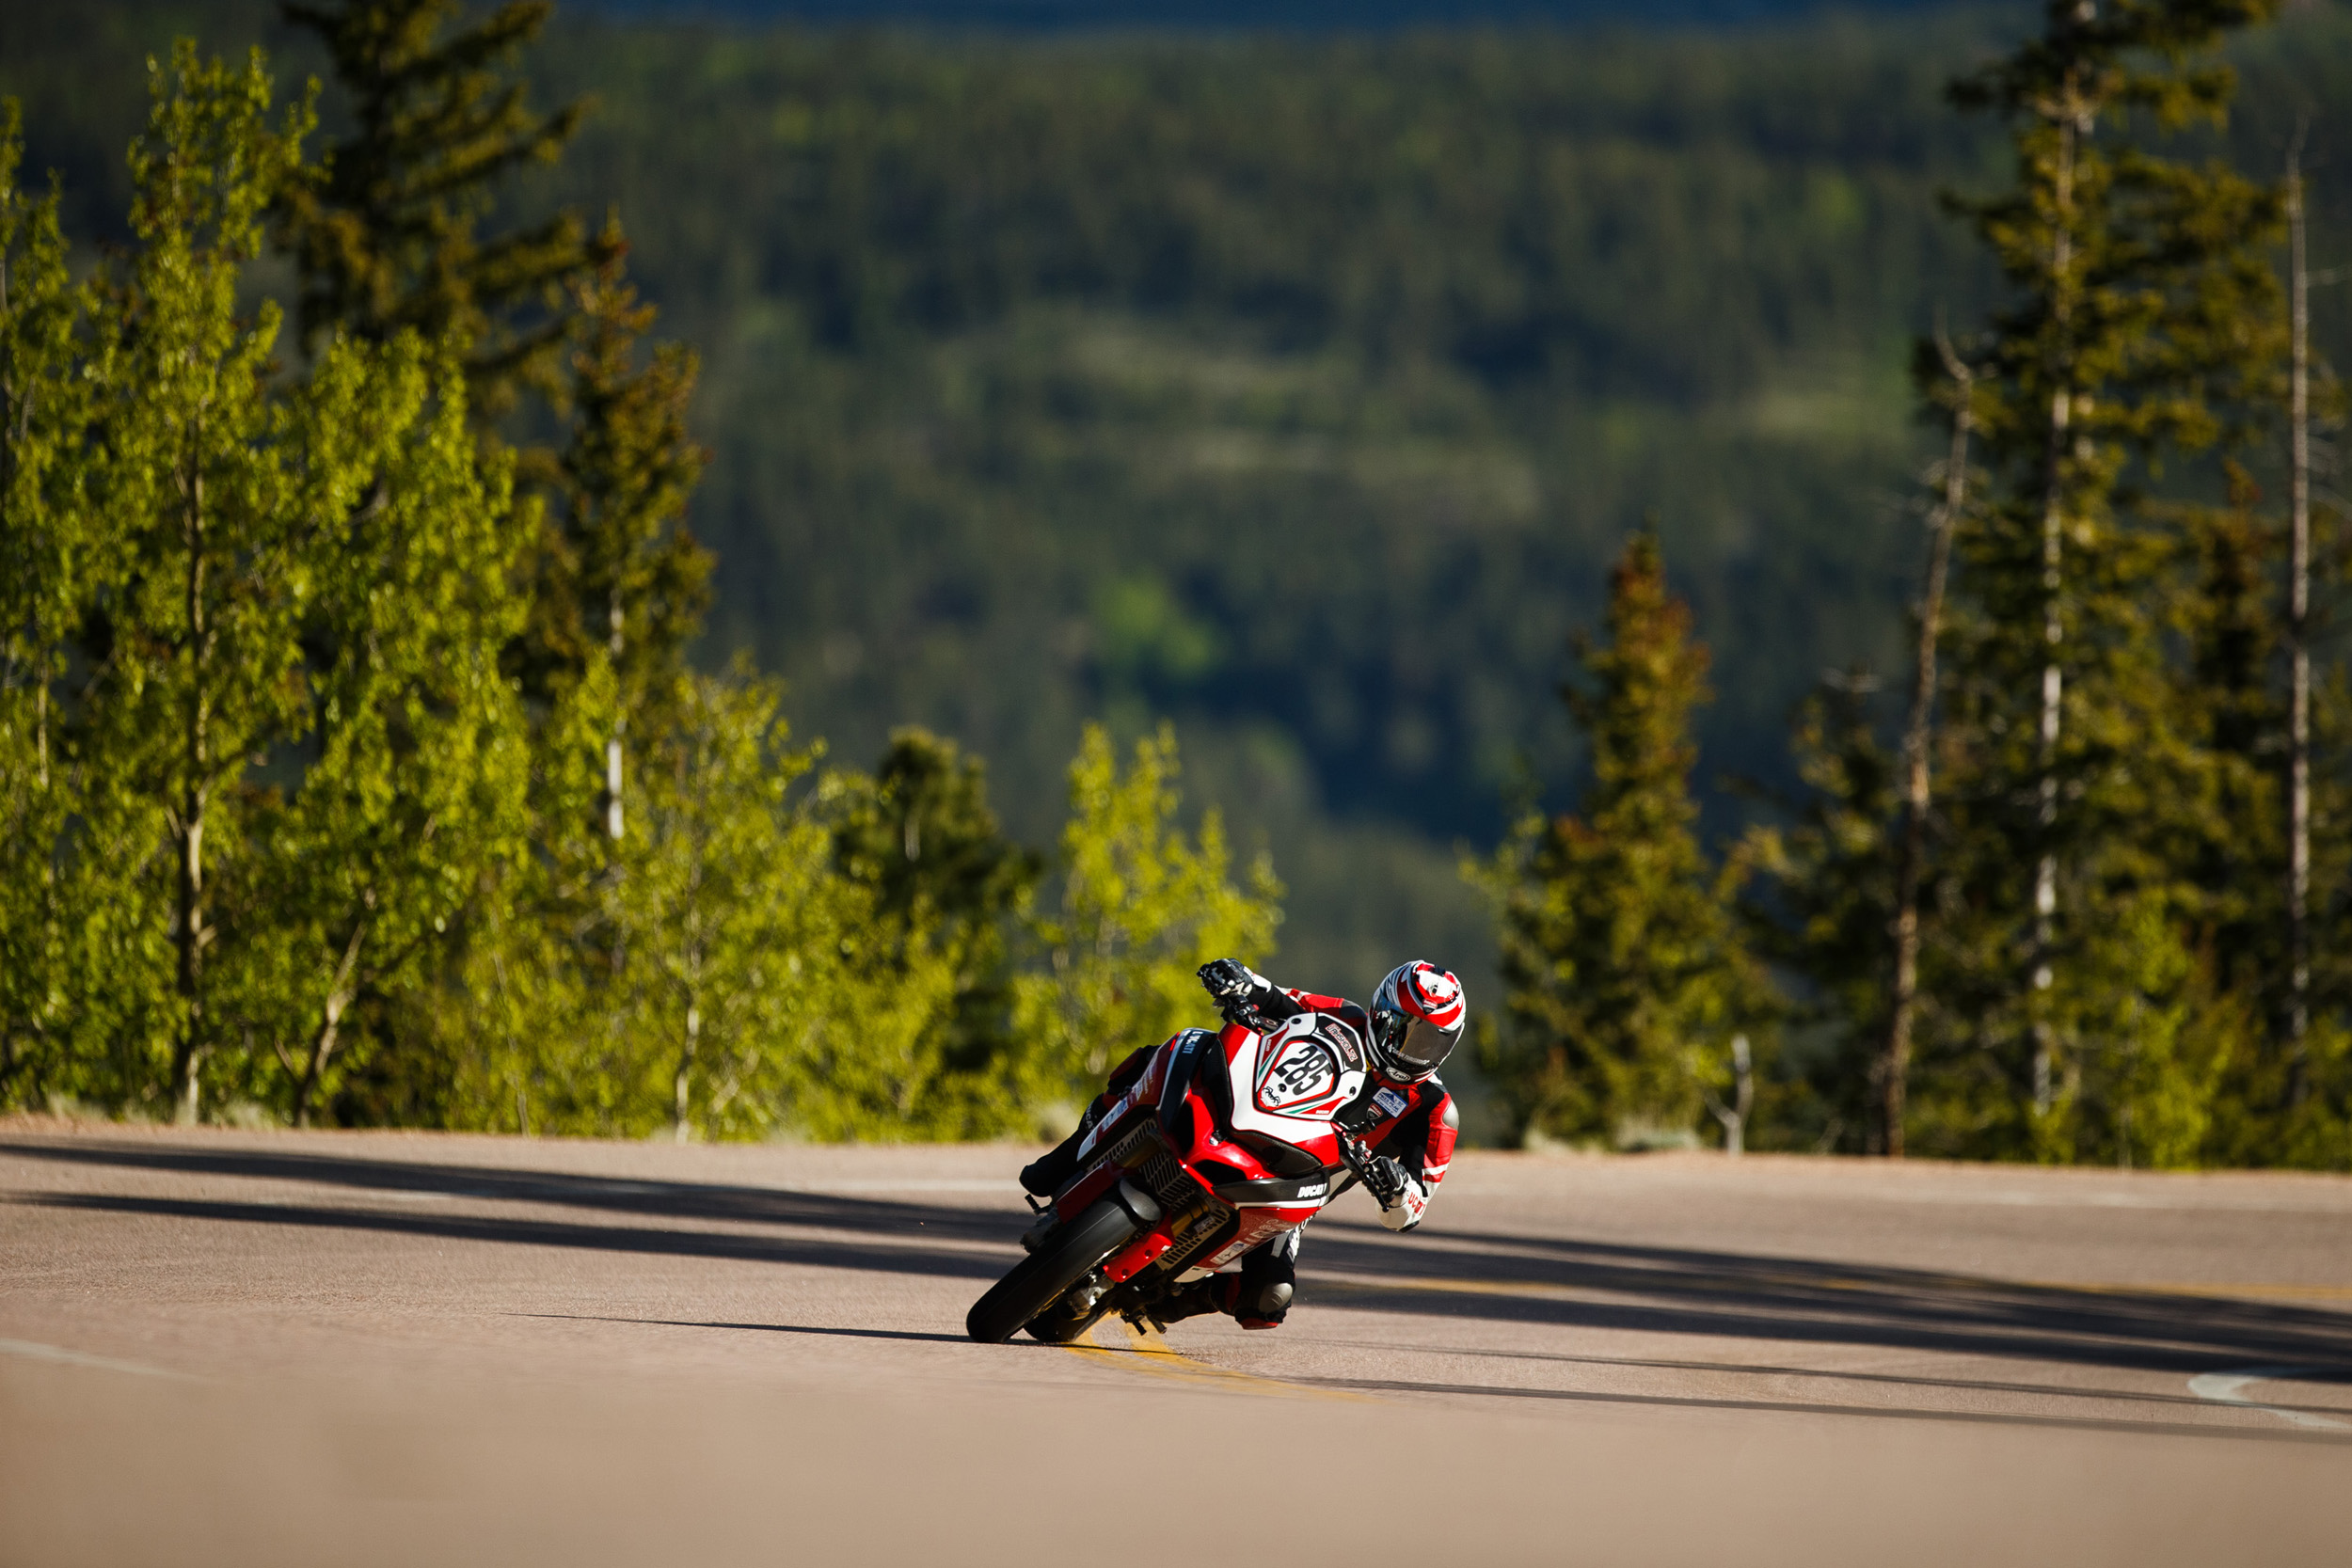 Codie Vahsholtz Riding Ducati Multistrada 1260 at Pikes Peak in Colorado